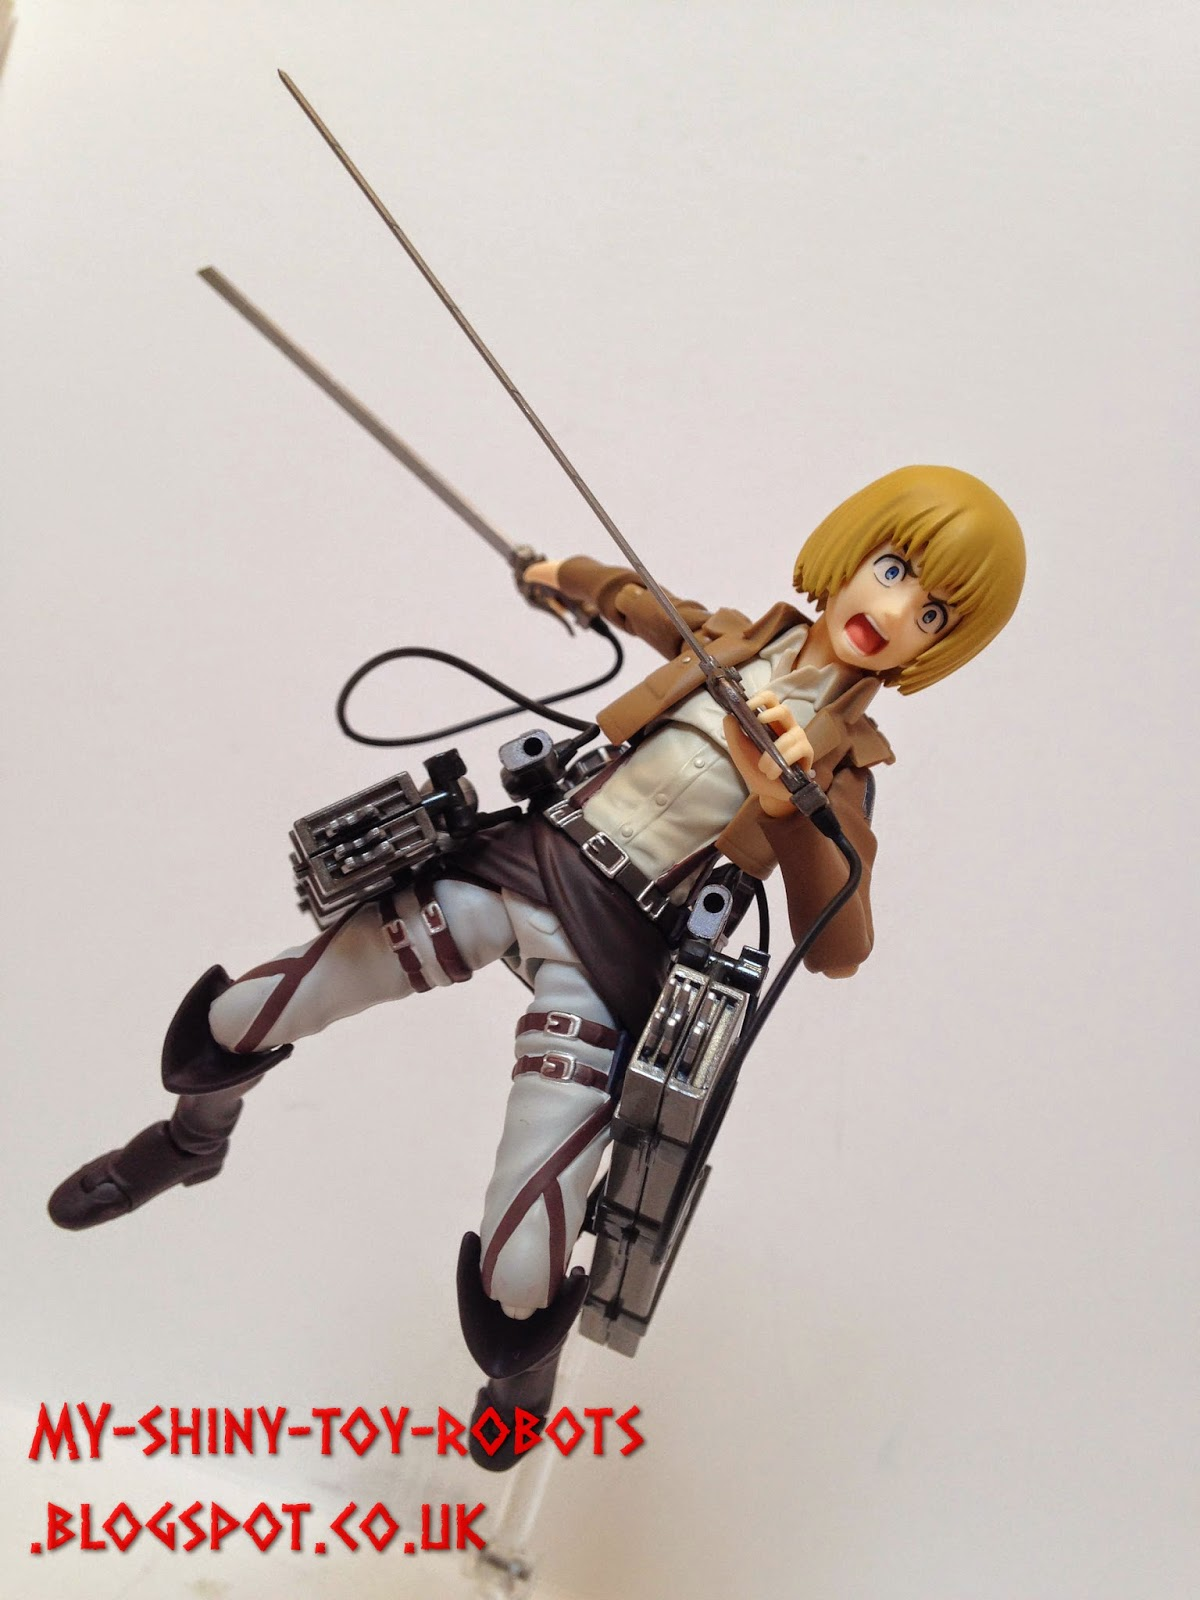 Armin need to be crazy badass more often